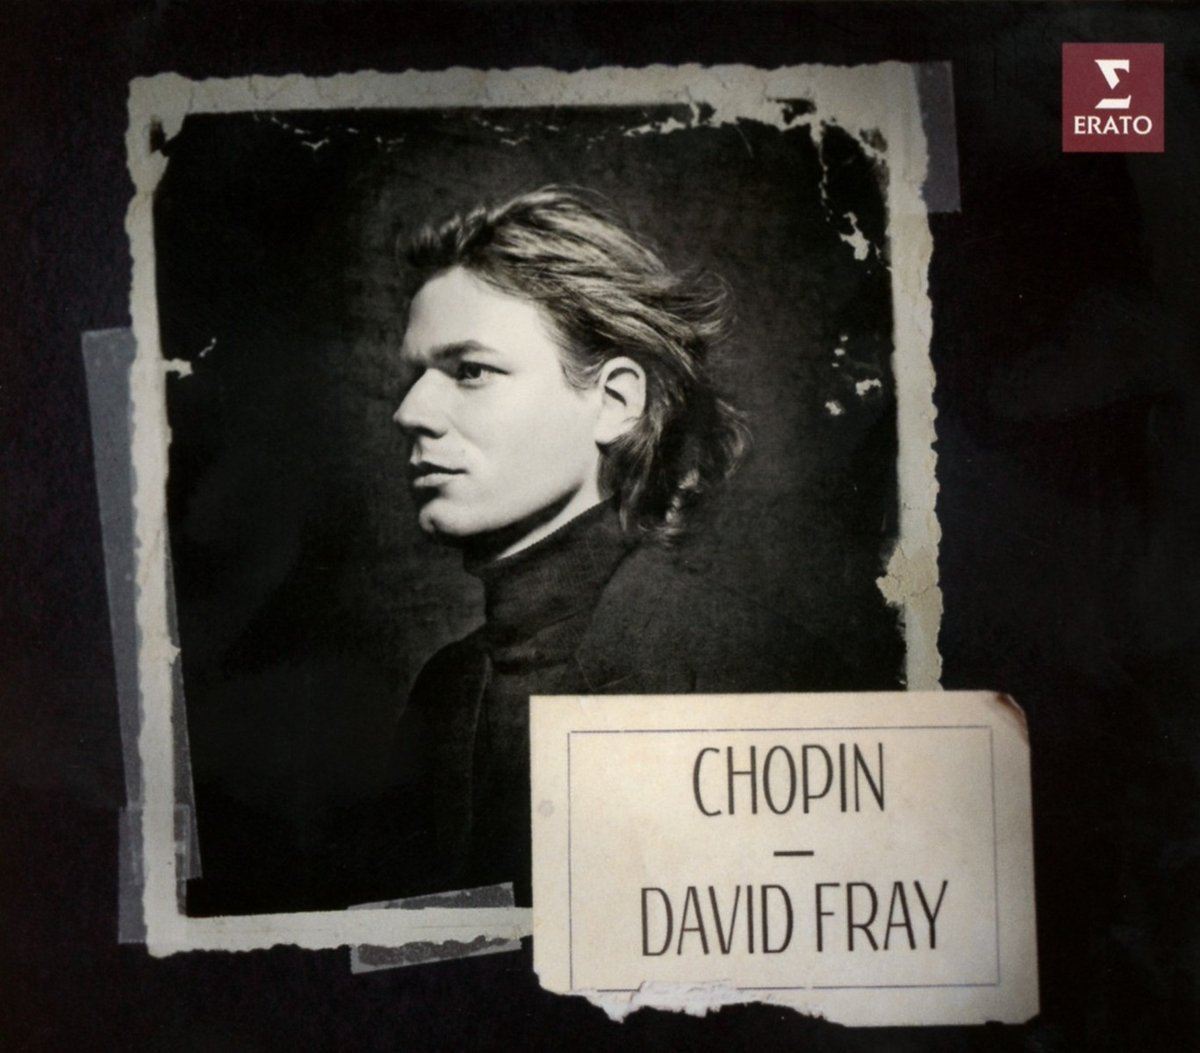 Chopin Rectal David Fray Erato